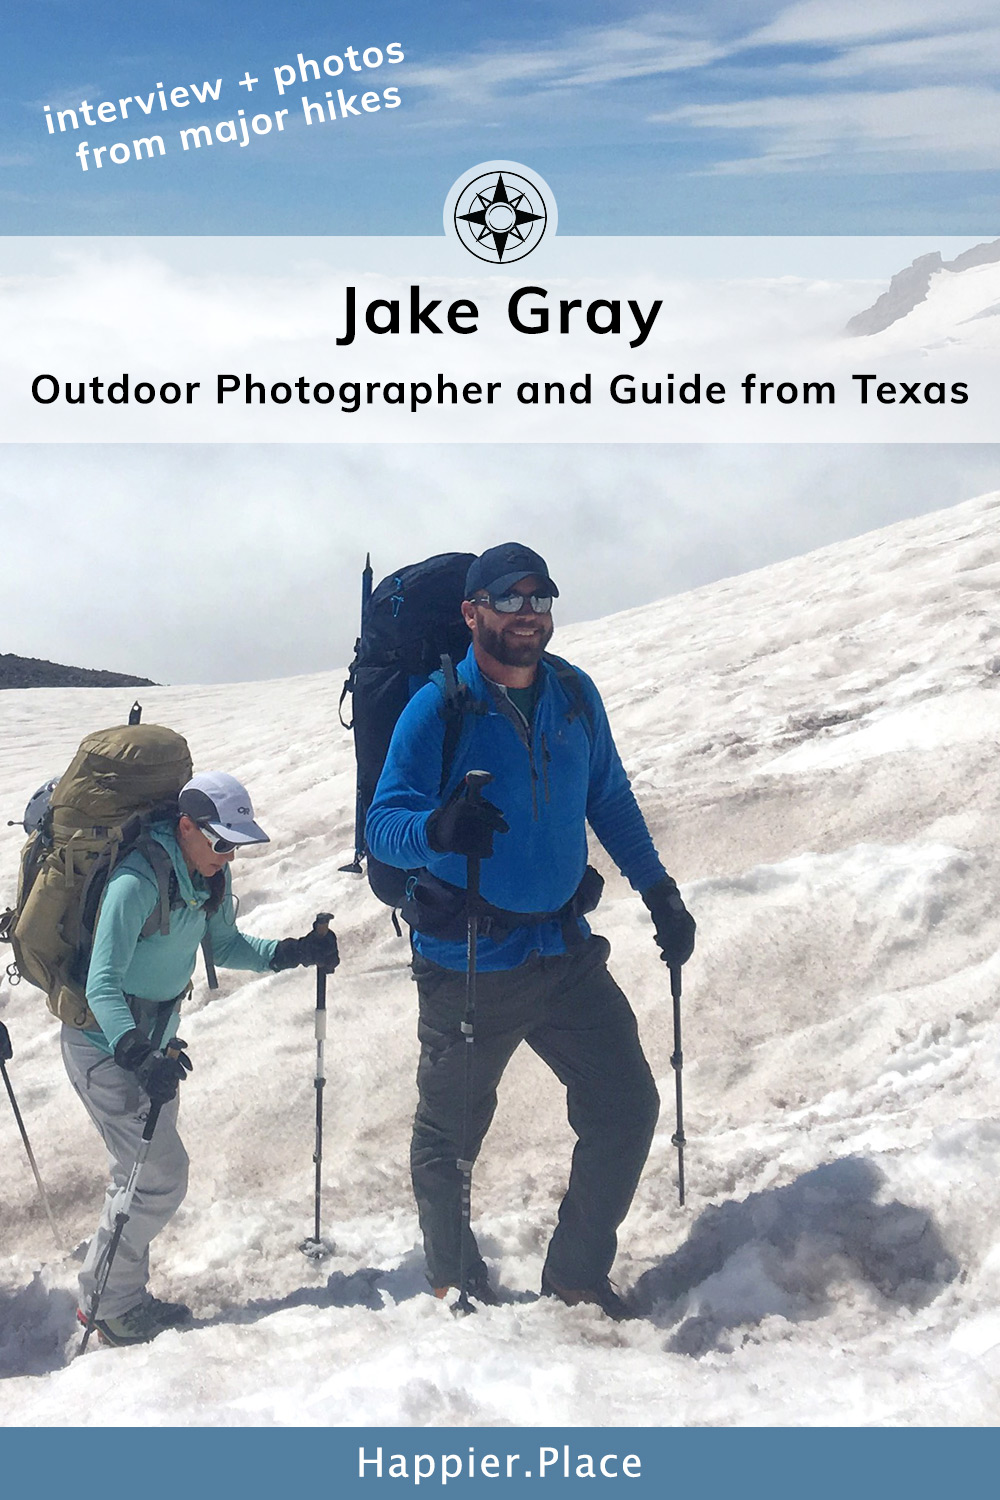 Jake Gray: Outdoor Photographer and Hiking Guide (Texas)